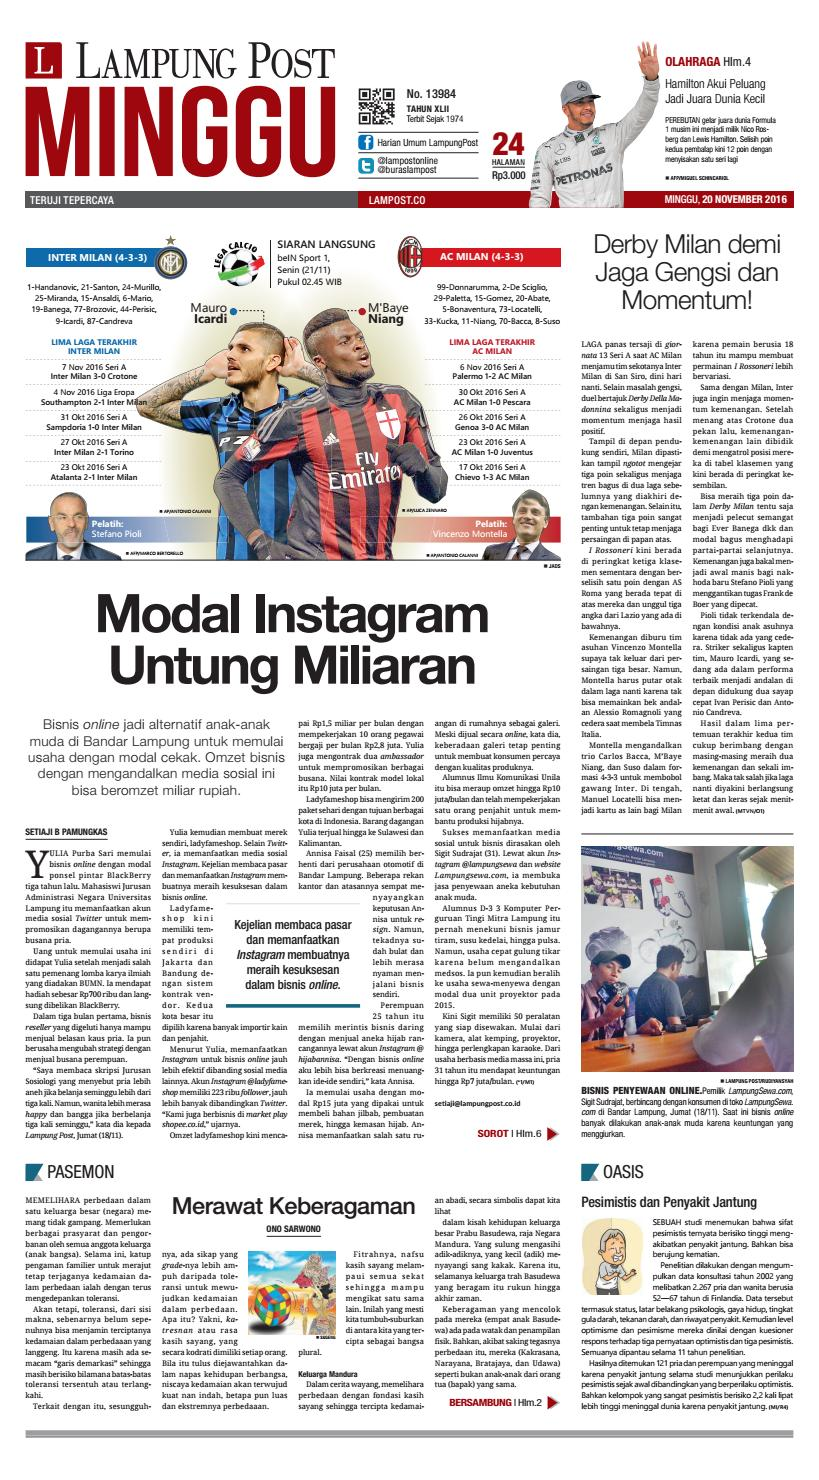 Lampung Post Minggu 20 November 2016 By Lampung Post Issuu